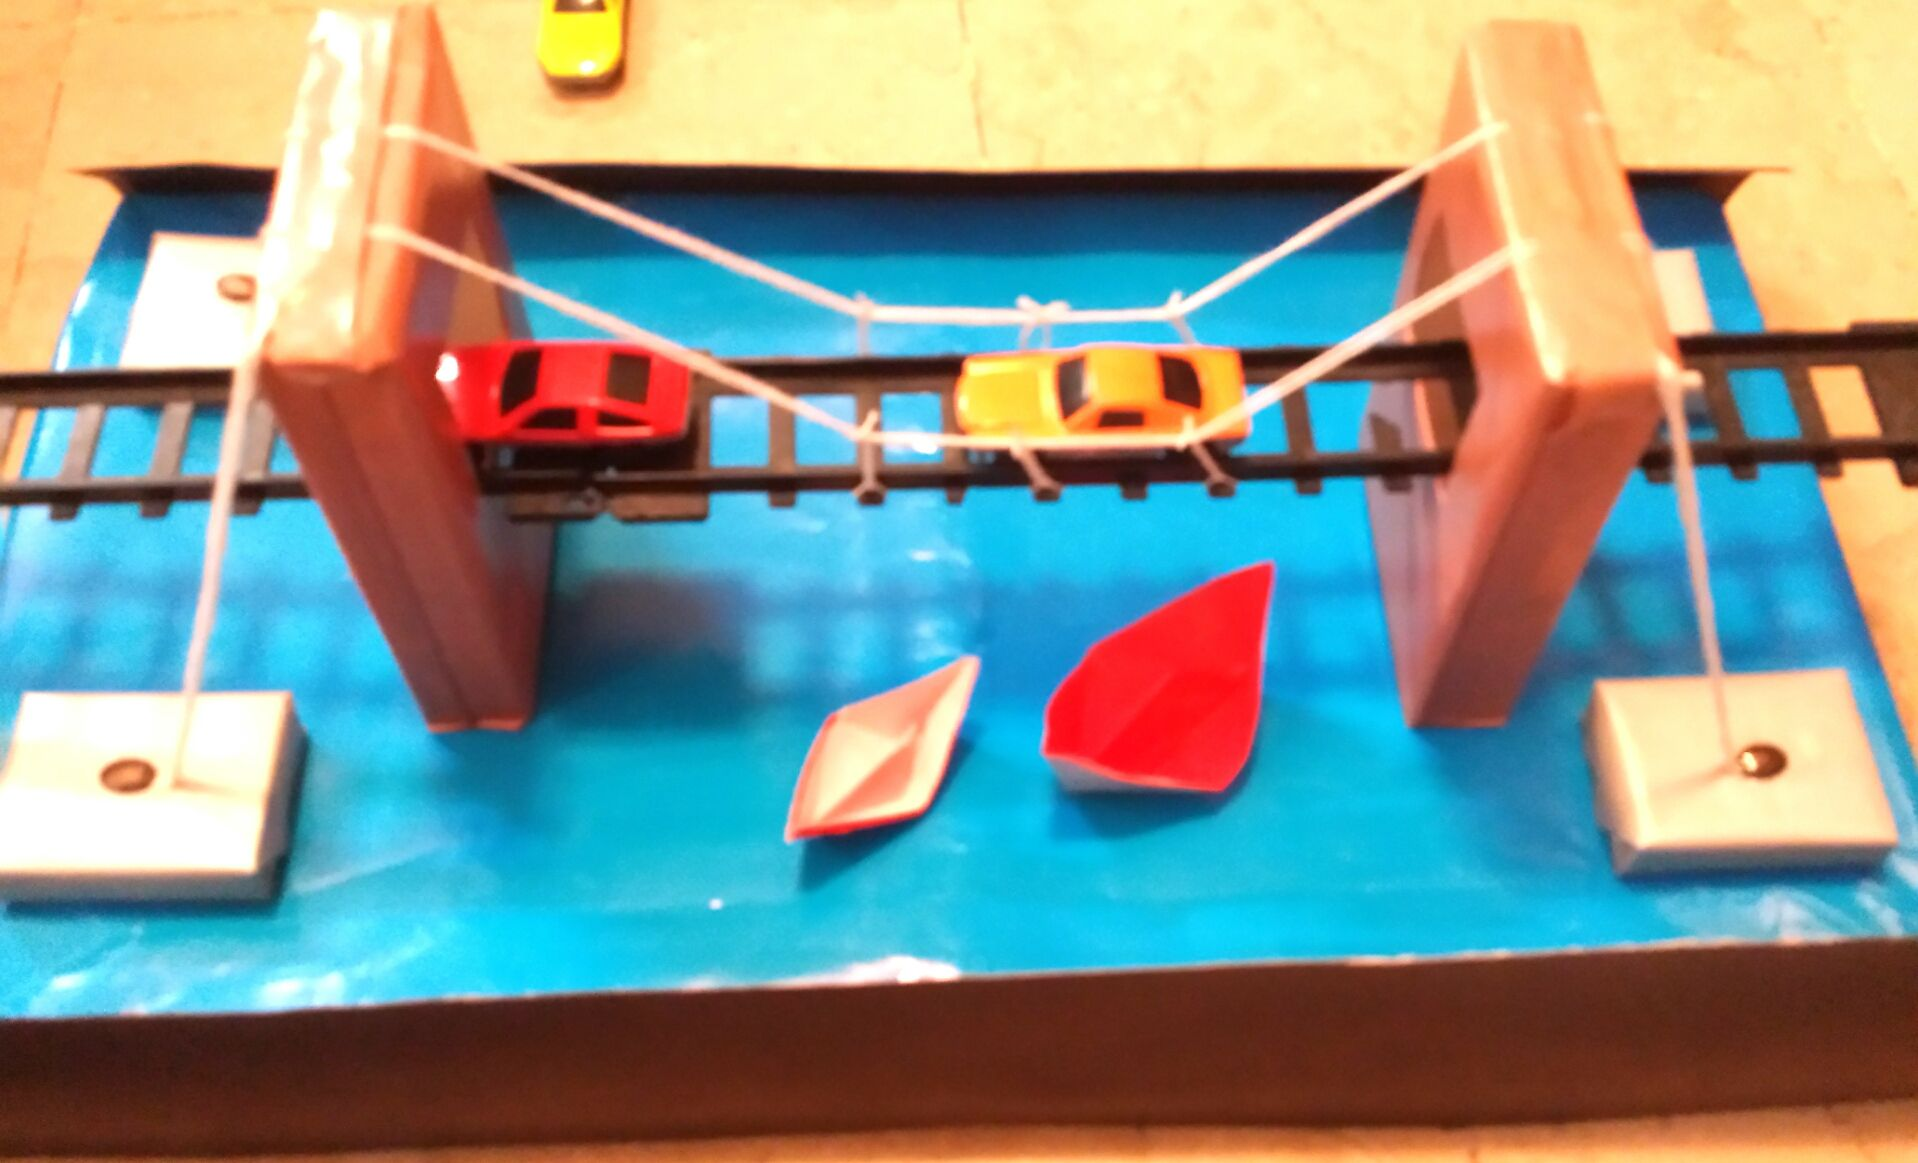 Diy Model Of A Bridge For Teens And Kids With Recycled